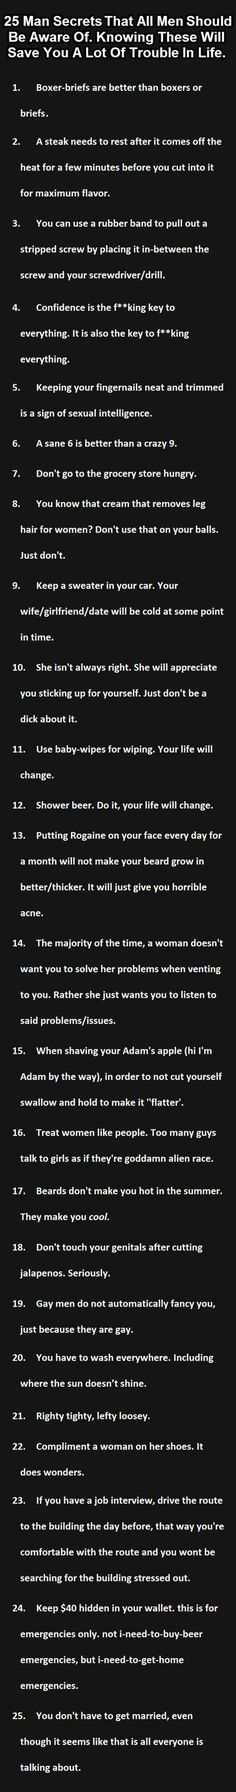 25 Man Secrets Funny Jokes For Adults, Life Purpose, Real Man, How To Become, Man Rules, Leadership Tips, Qoutes About Life, Life Qoute, Fun Facts